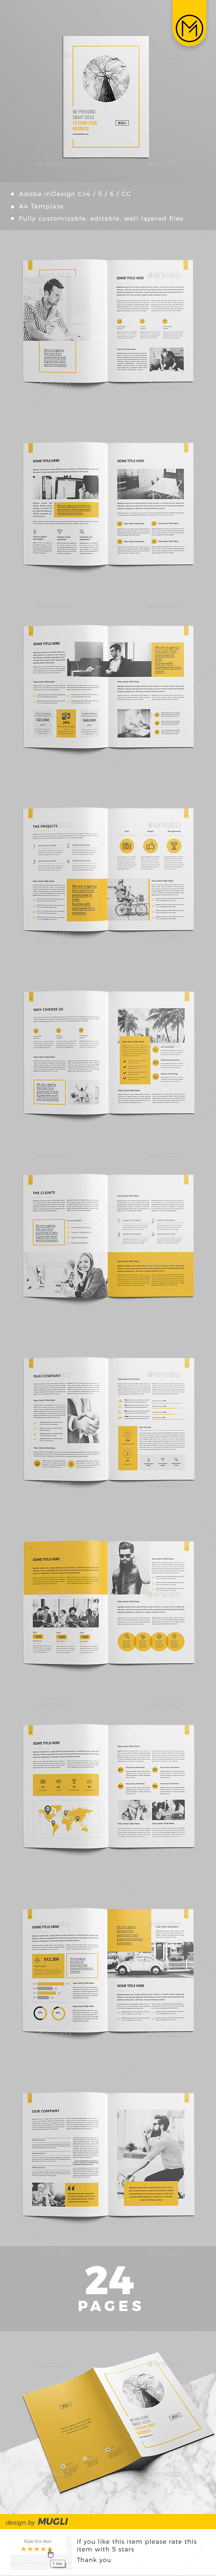 Corporate Brochure Design 2018 - Corporate Brochures